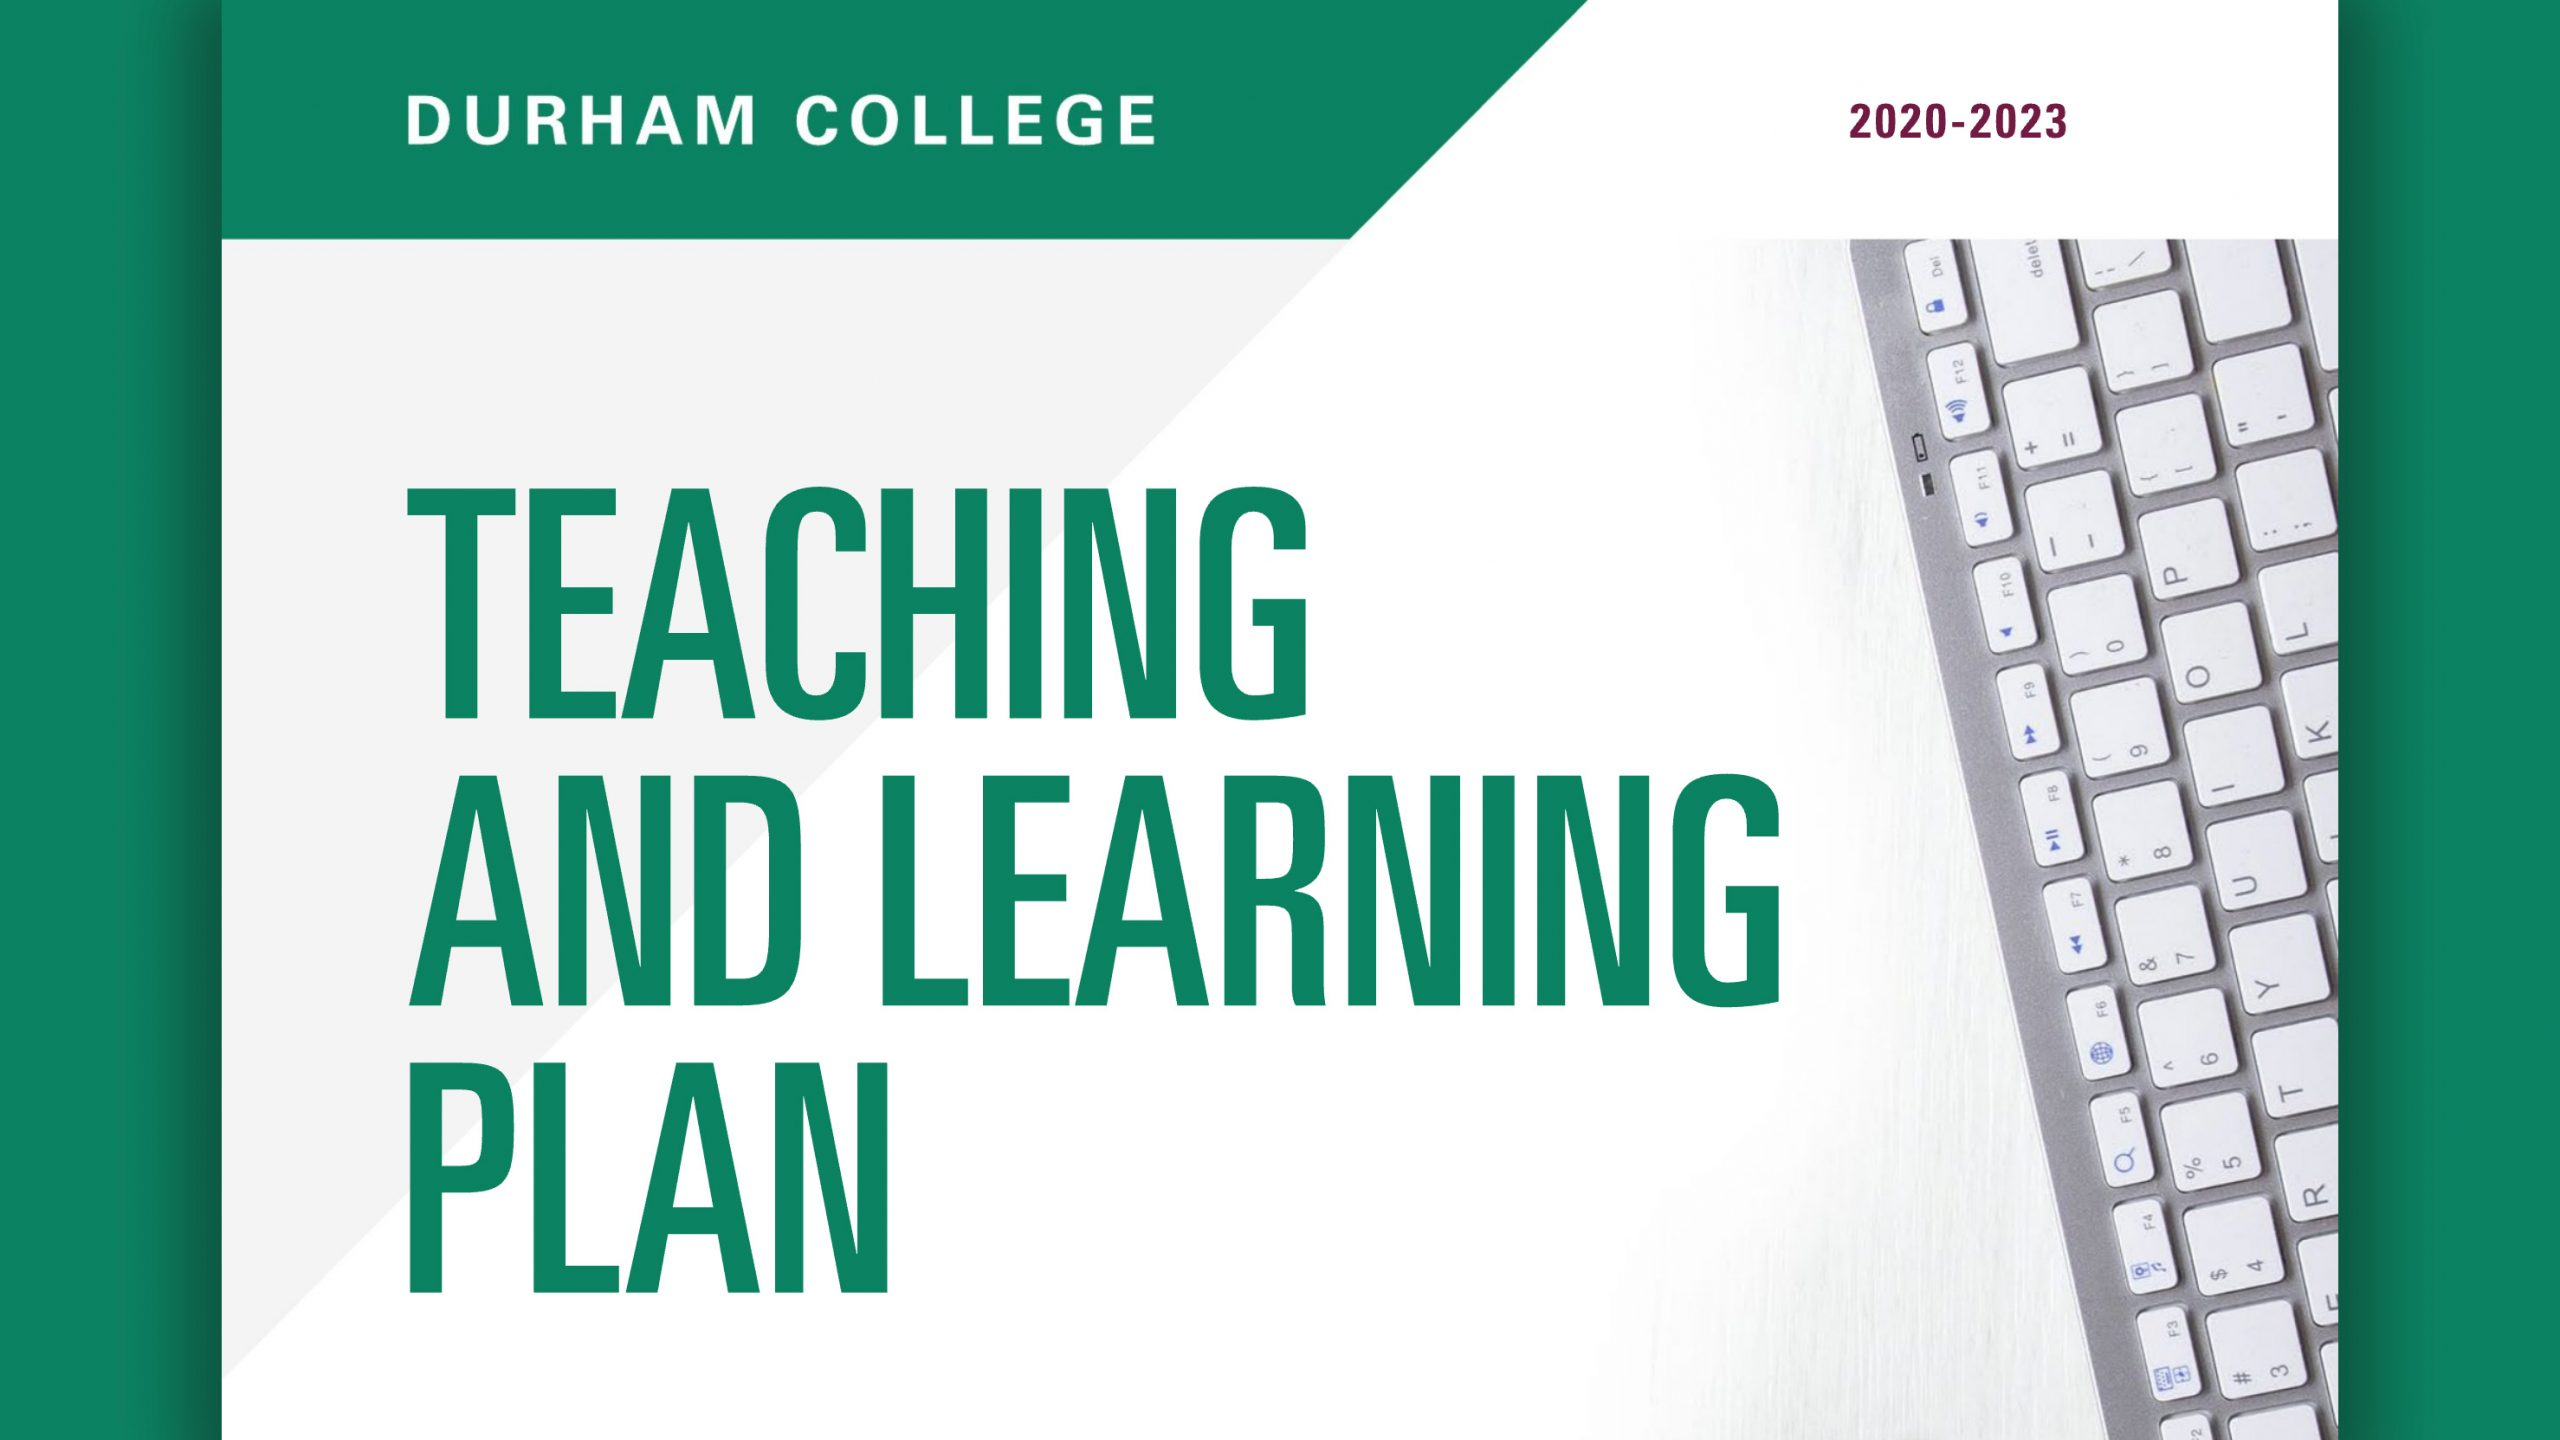 Durham College Teaching and Learning Plan